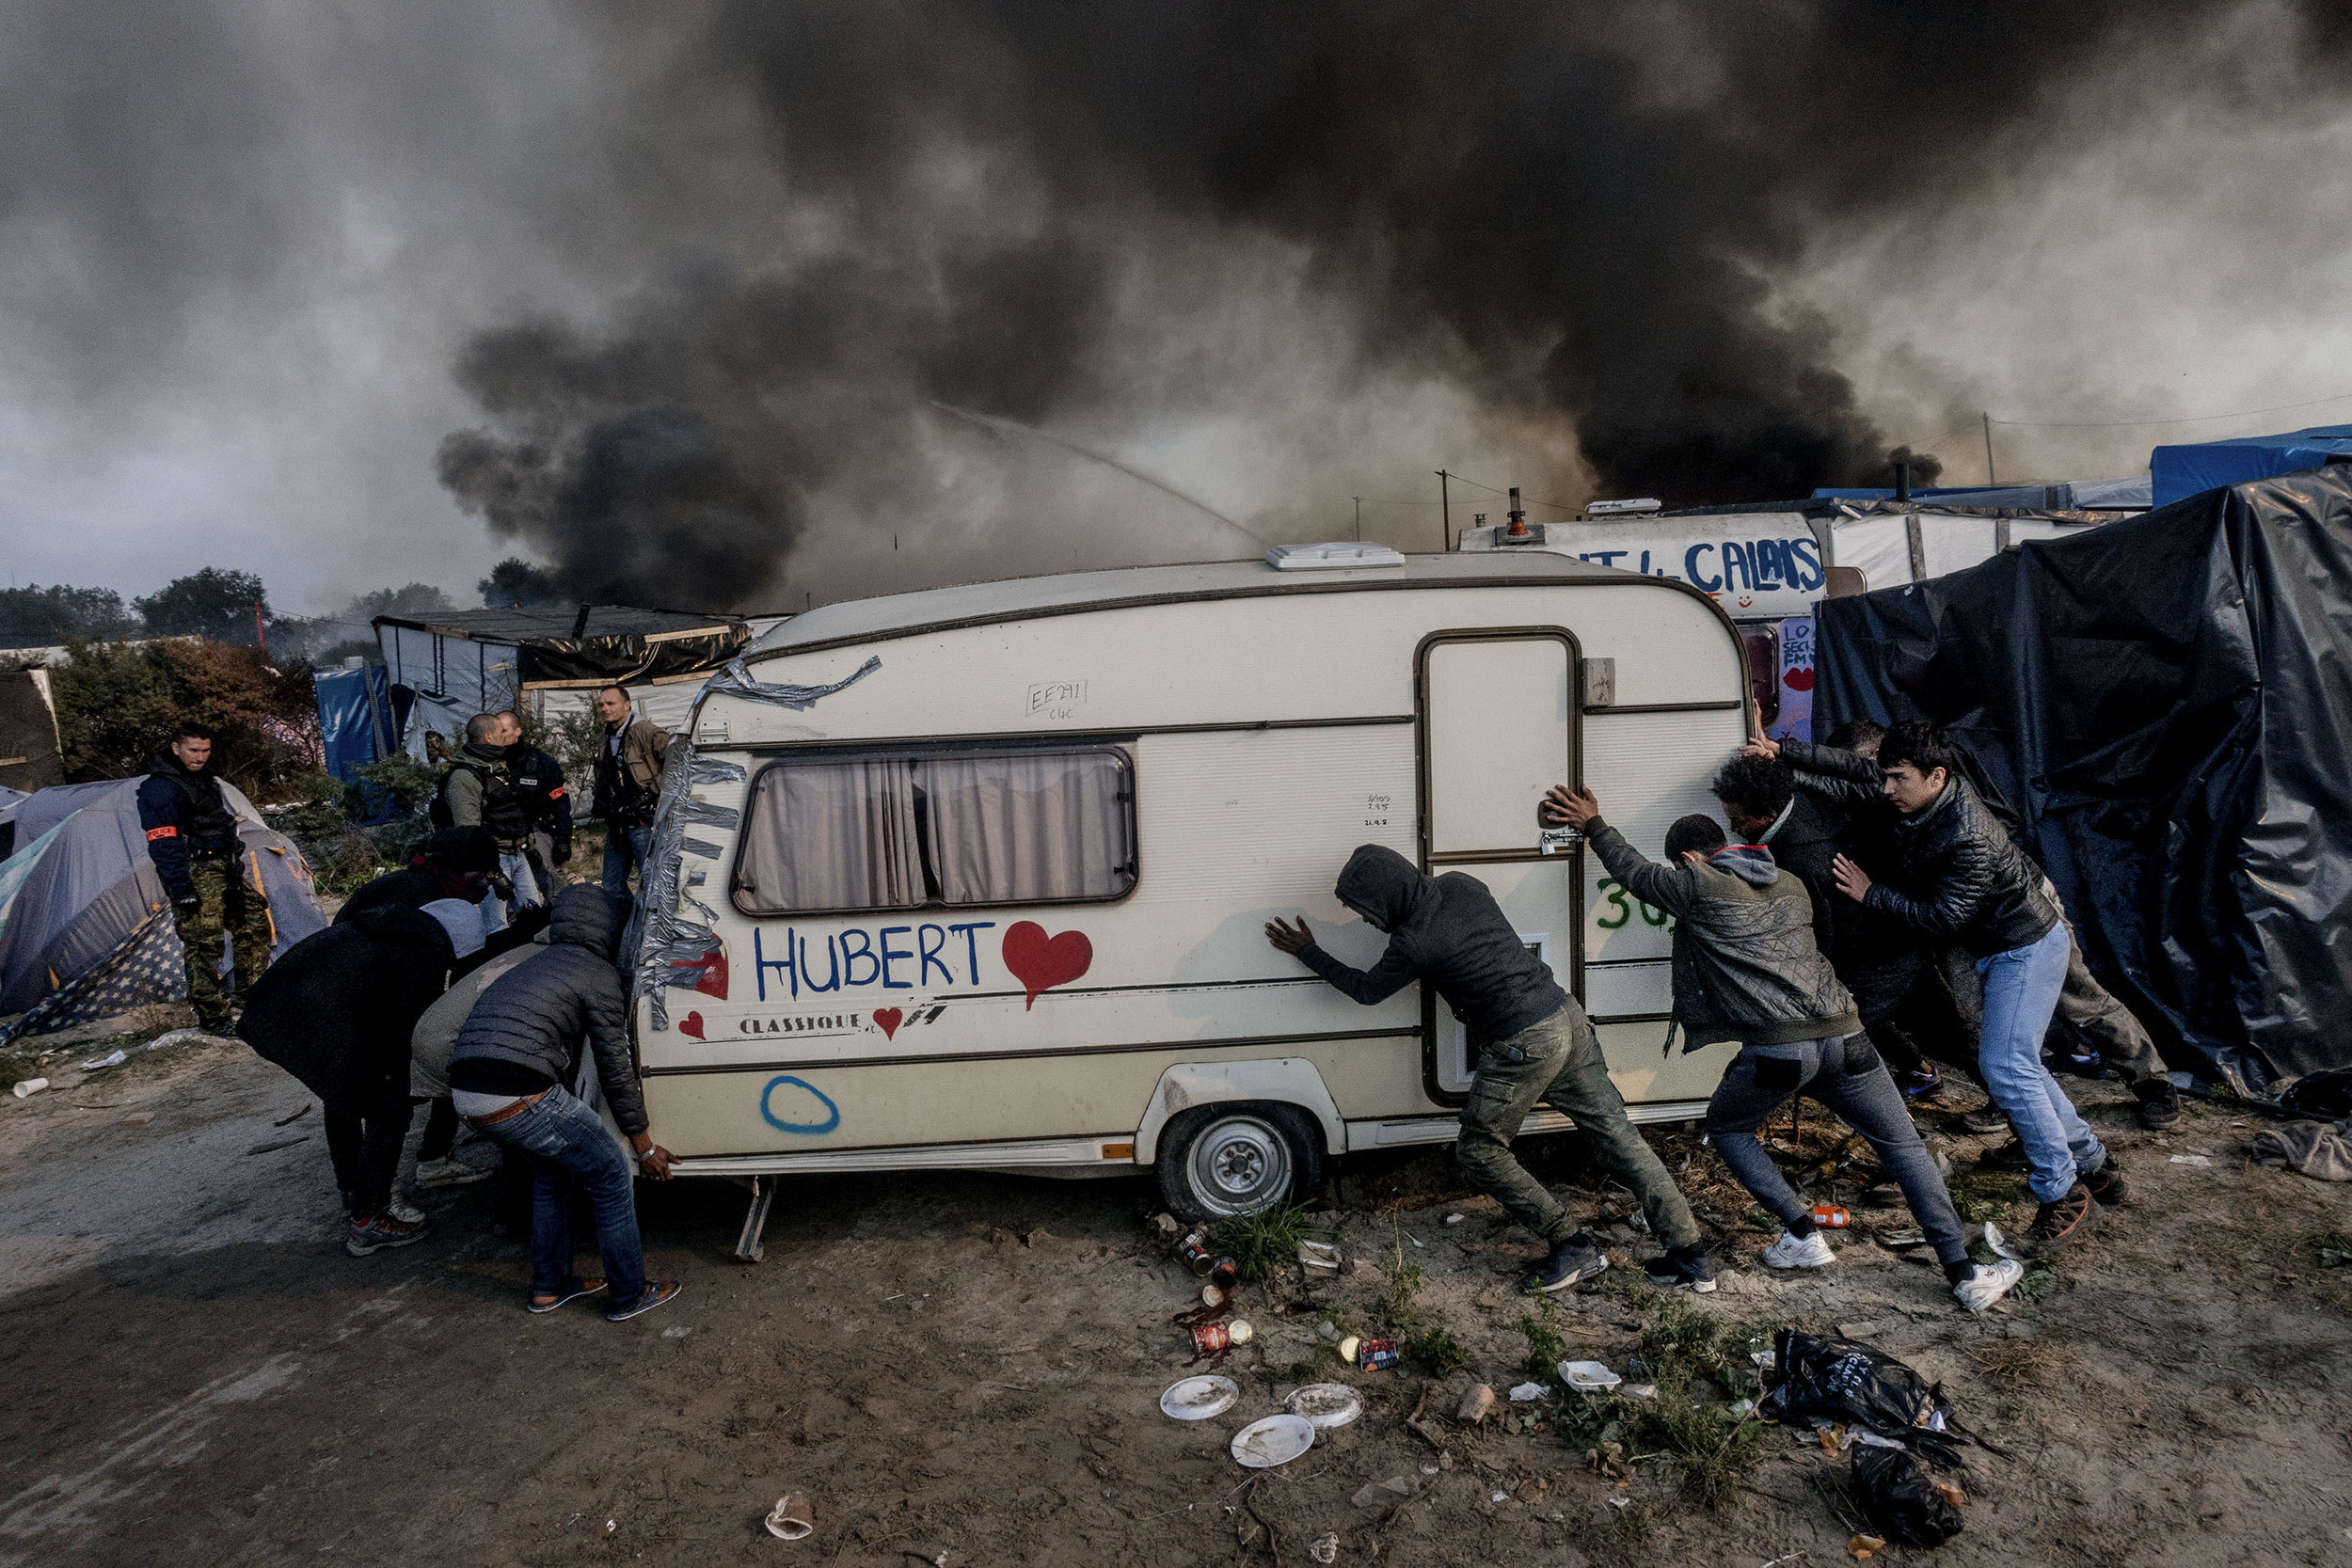 26th October 2016, The Jungle of Calais in France is in huge fire. Few migrants push their caravan to save from fire.